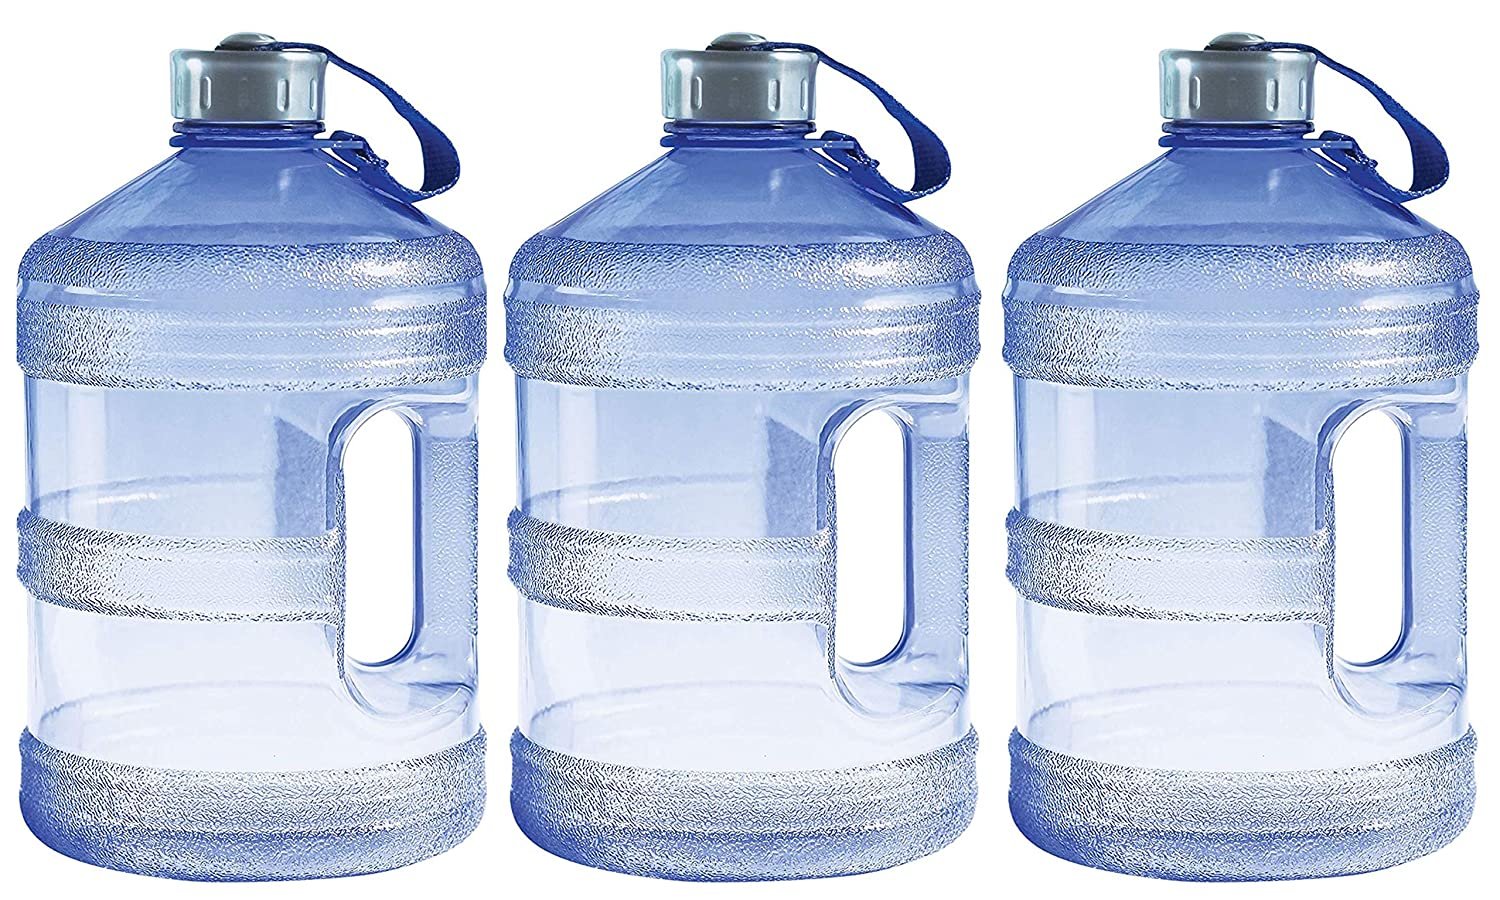 69e8b3fc35 Amazon.com : New Wave Enviro BpA Free 1 Gallon Water Bottle (Round)  (3.(Pack)) : Sports & Outdoors